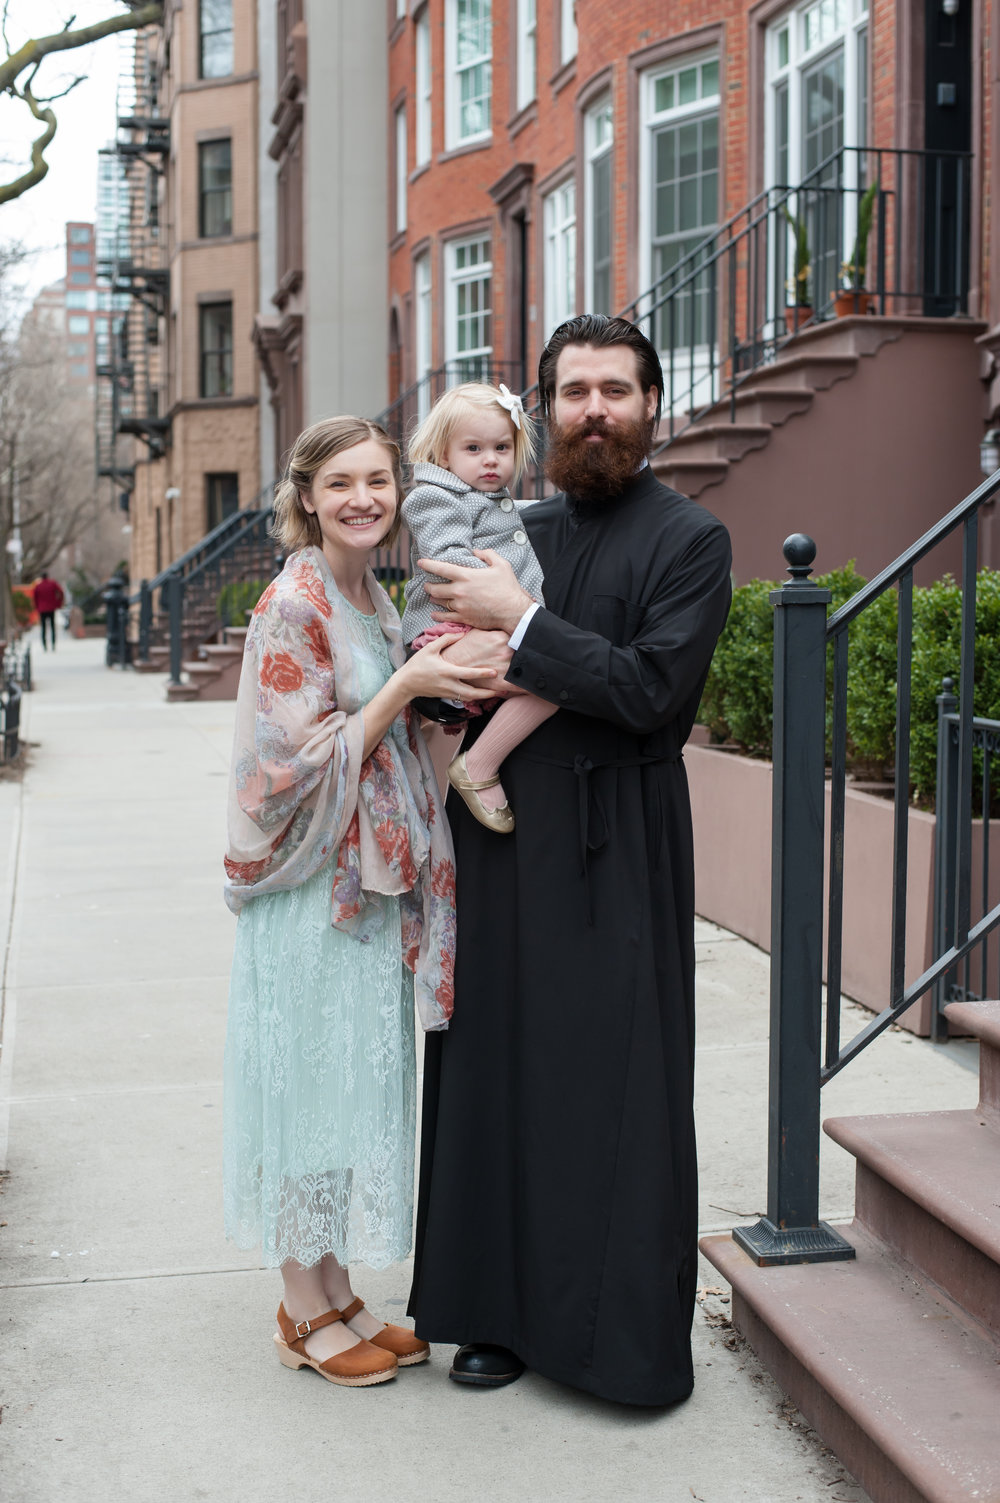 "Our little family! My husband wears a black cassock as his seminary ""uniform"" and on Sundays since he is a sub-deacon. Photo credit  Alexis El Massih Photography"